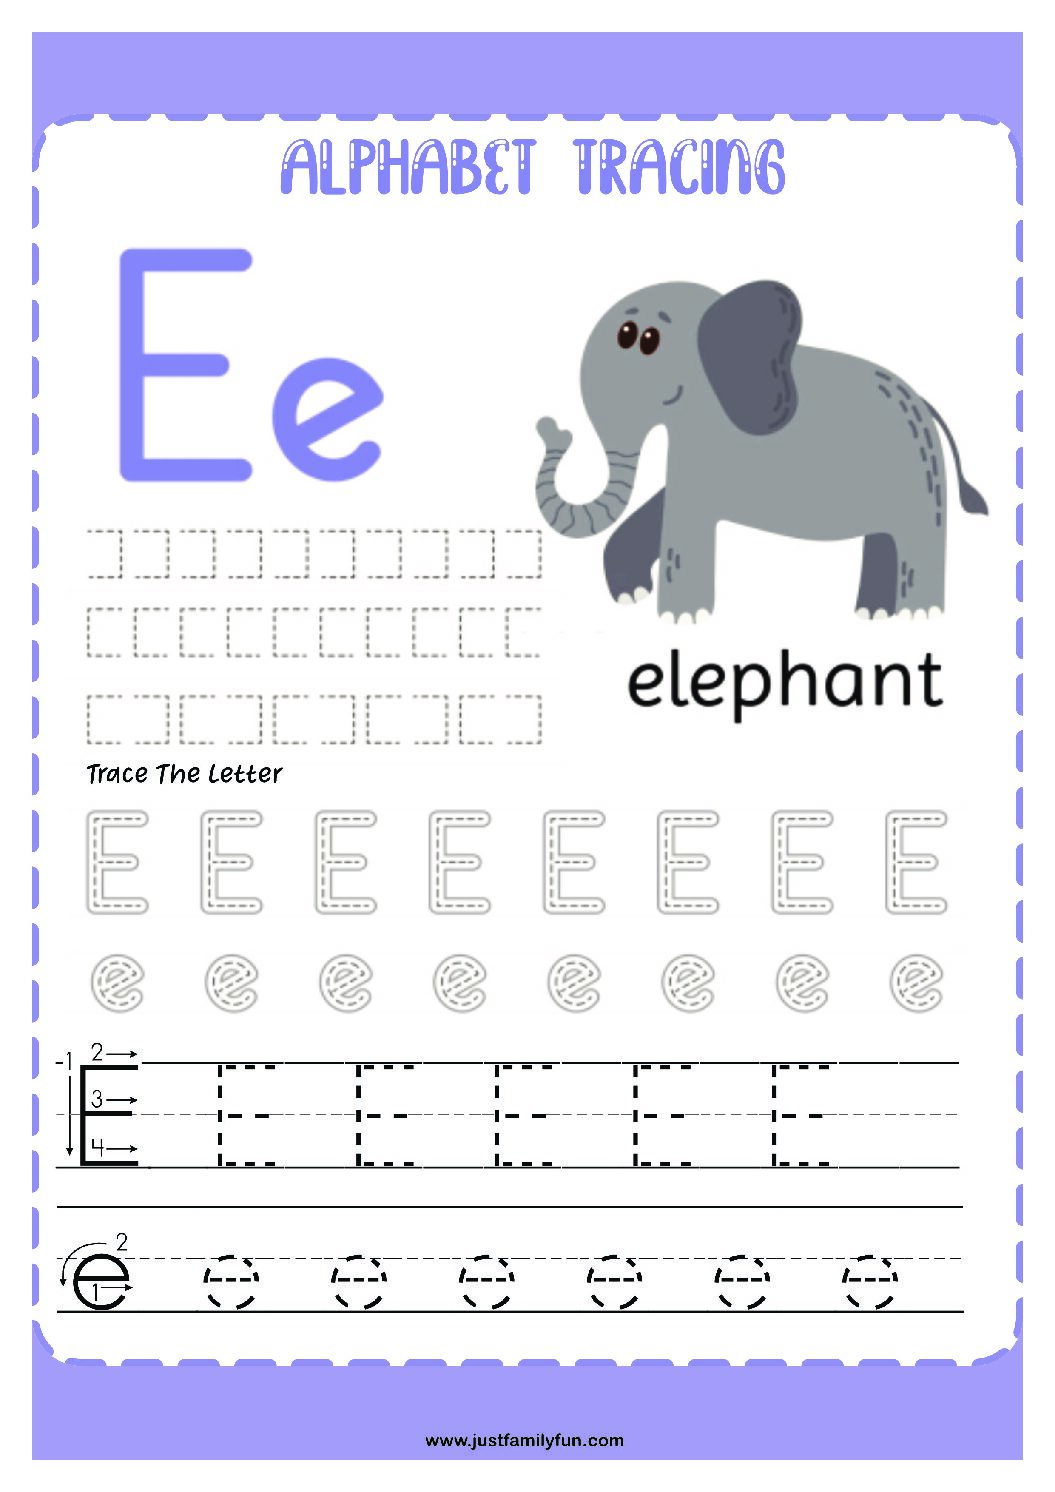 Alphabets_5-pdf Free Printable Trace The Alphabet Worksheets for Kids.